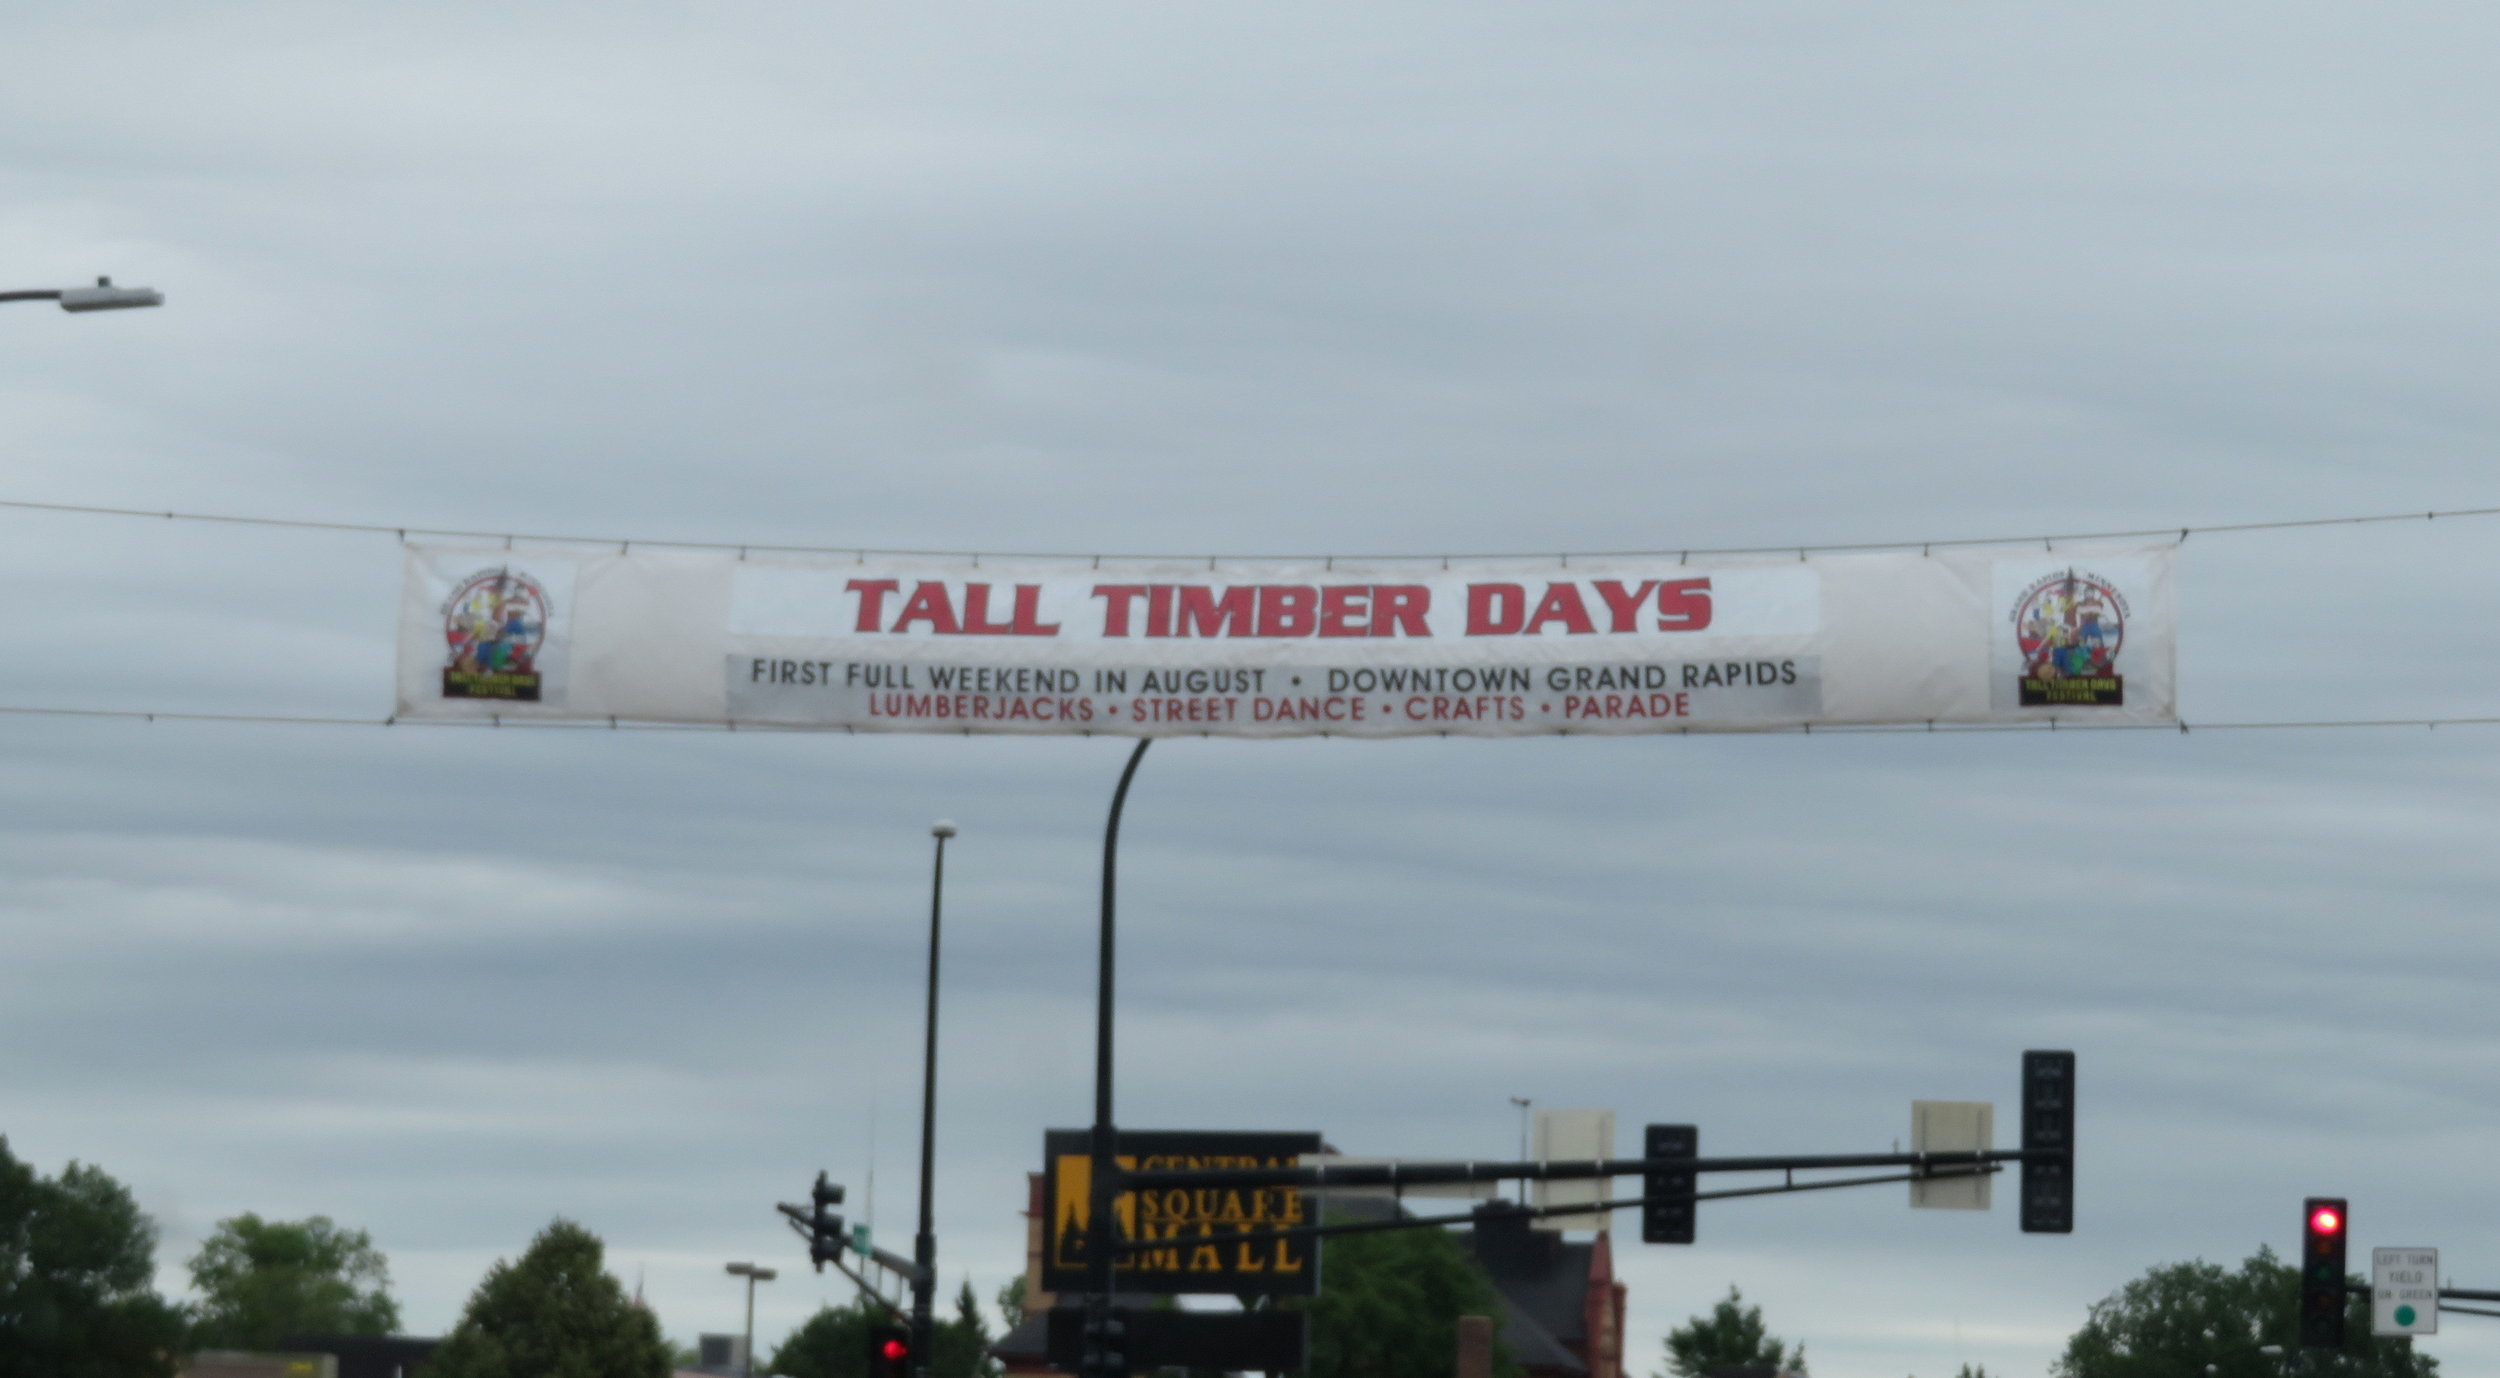 tall timber days banner.JPG